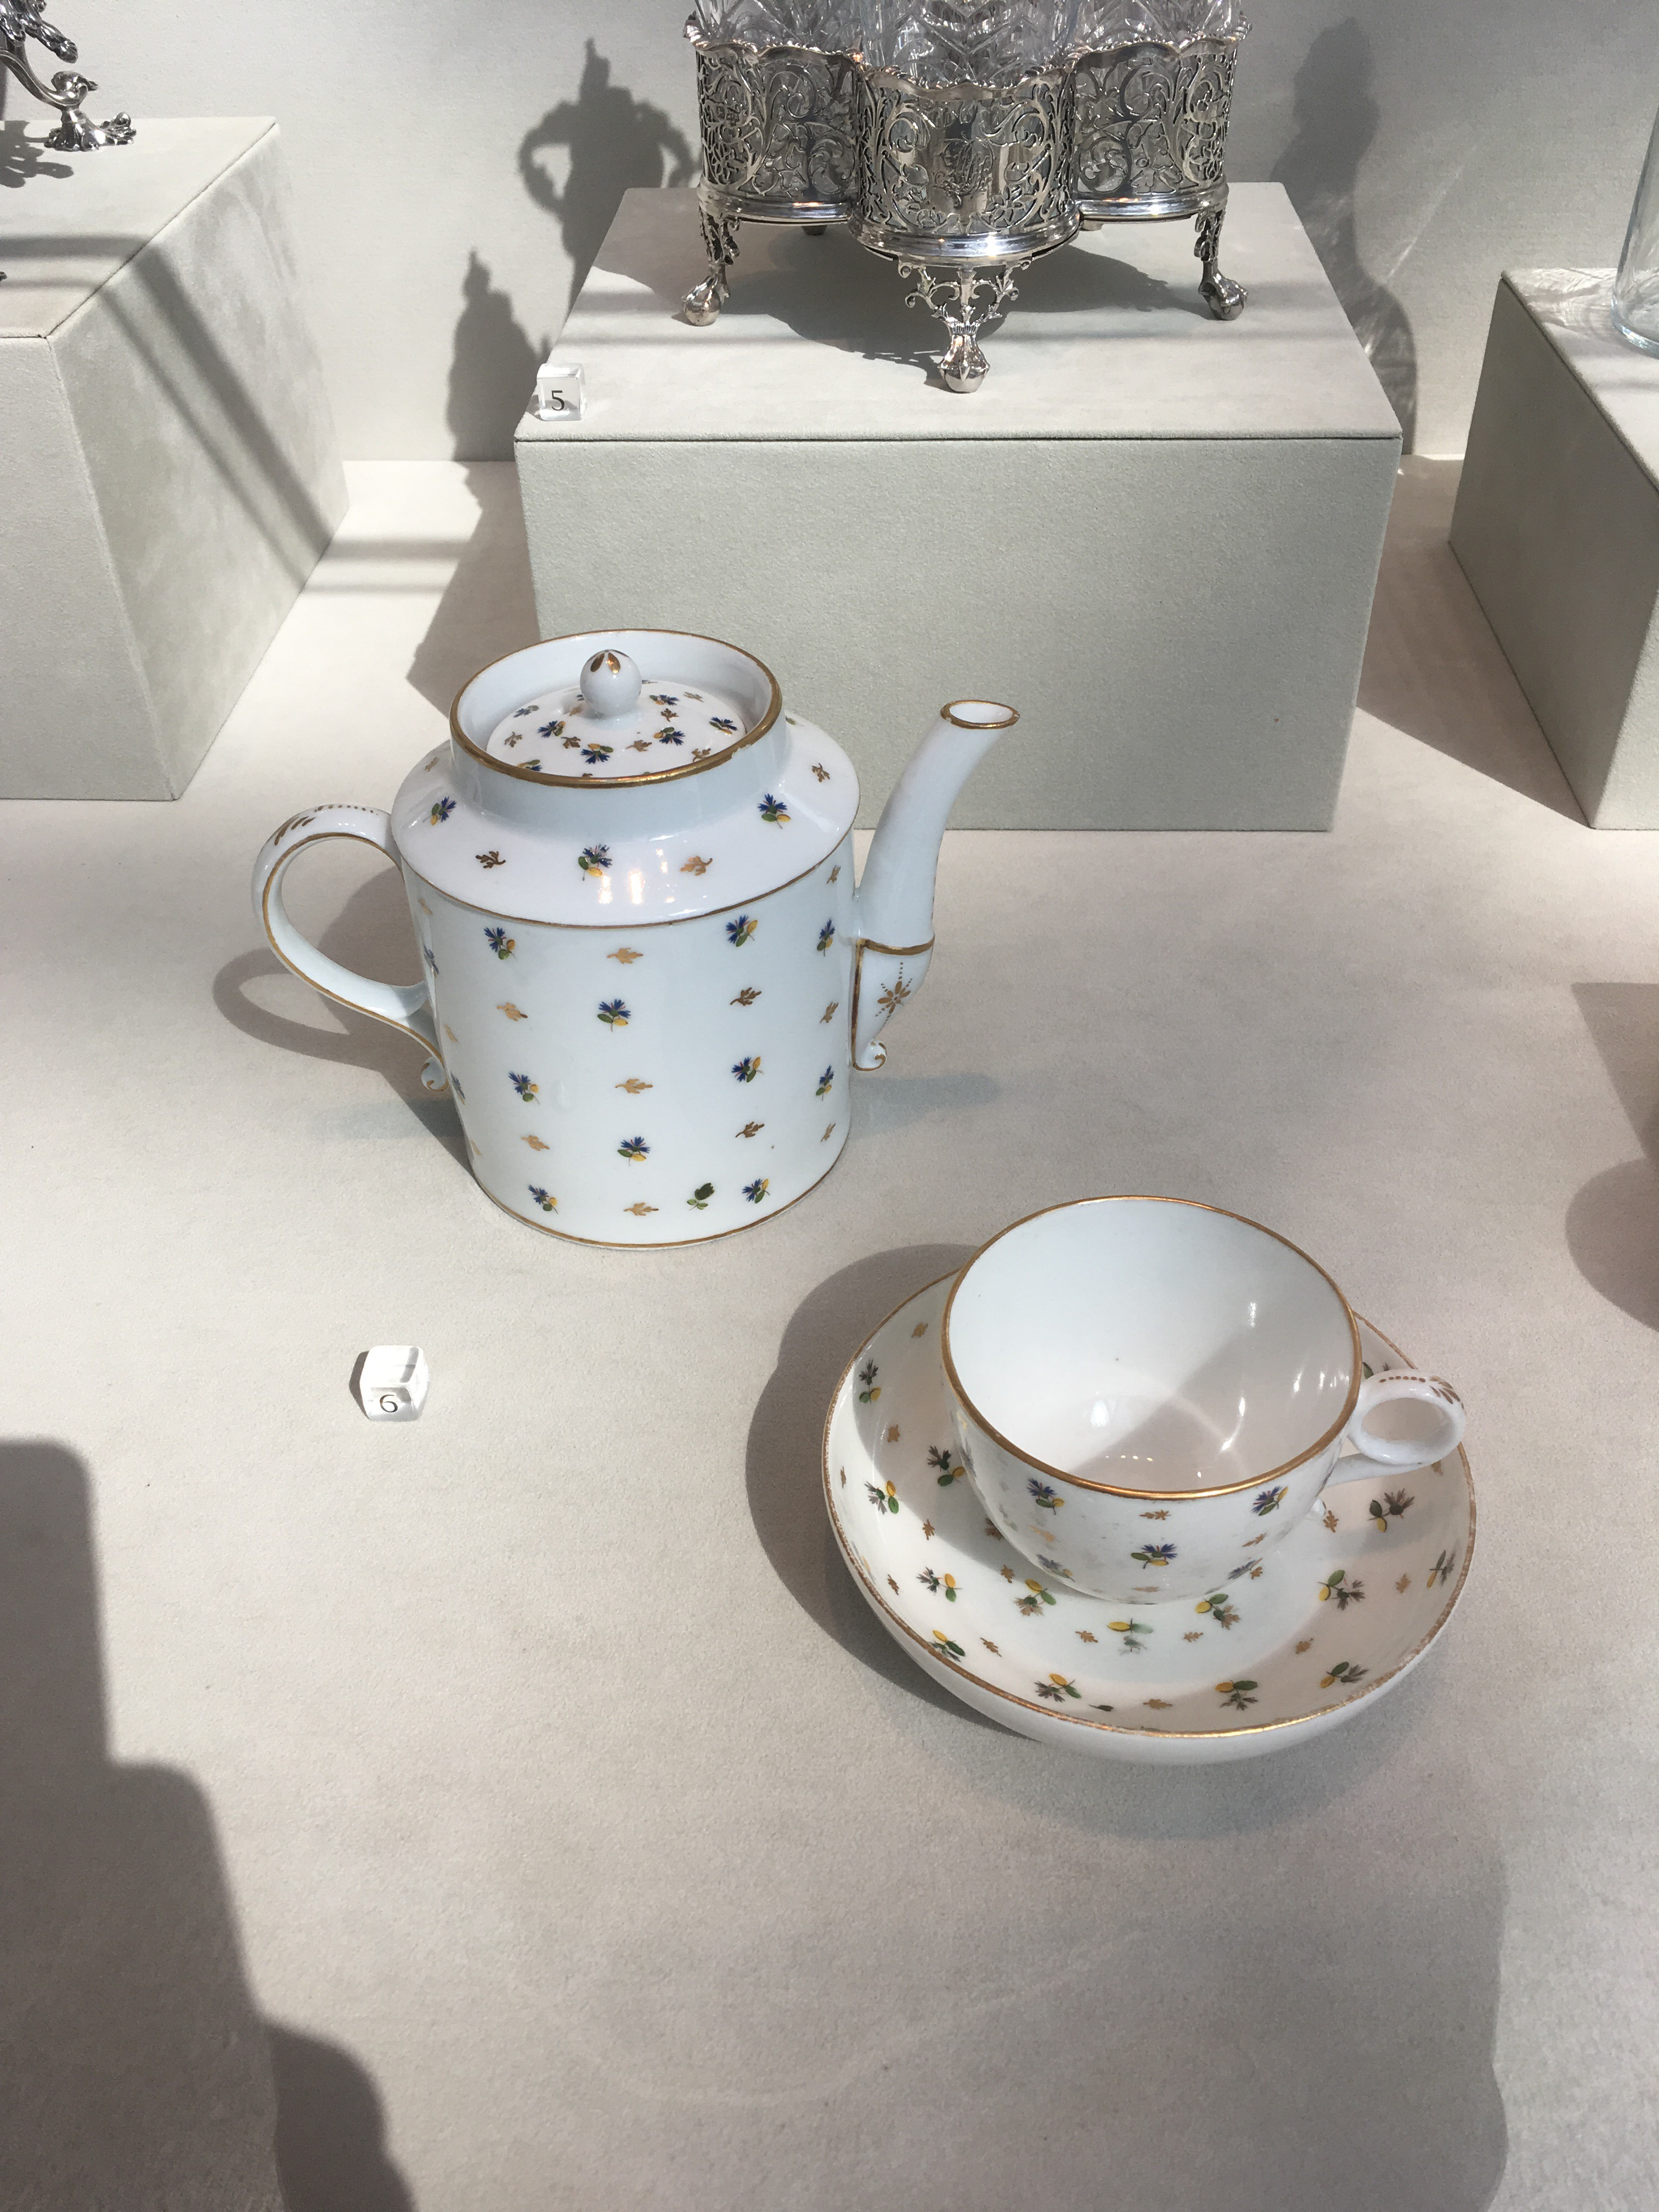 French porcelain teapot, cup and saucer with a gold and black pattern